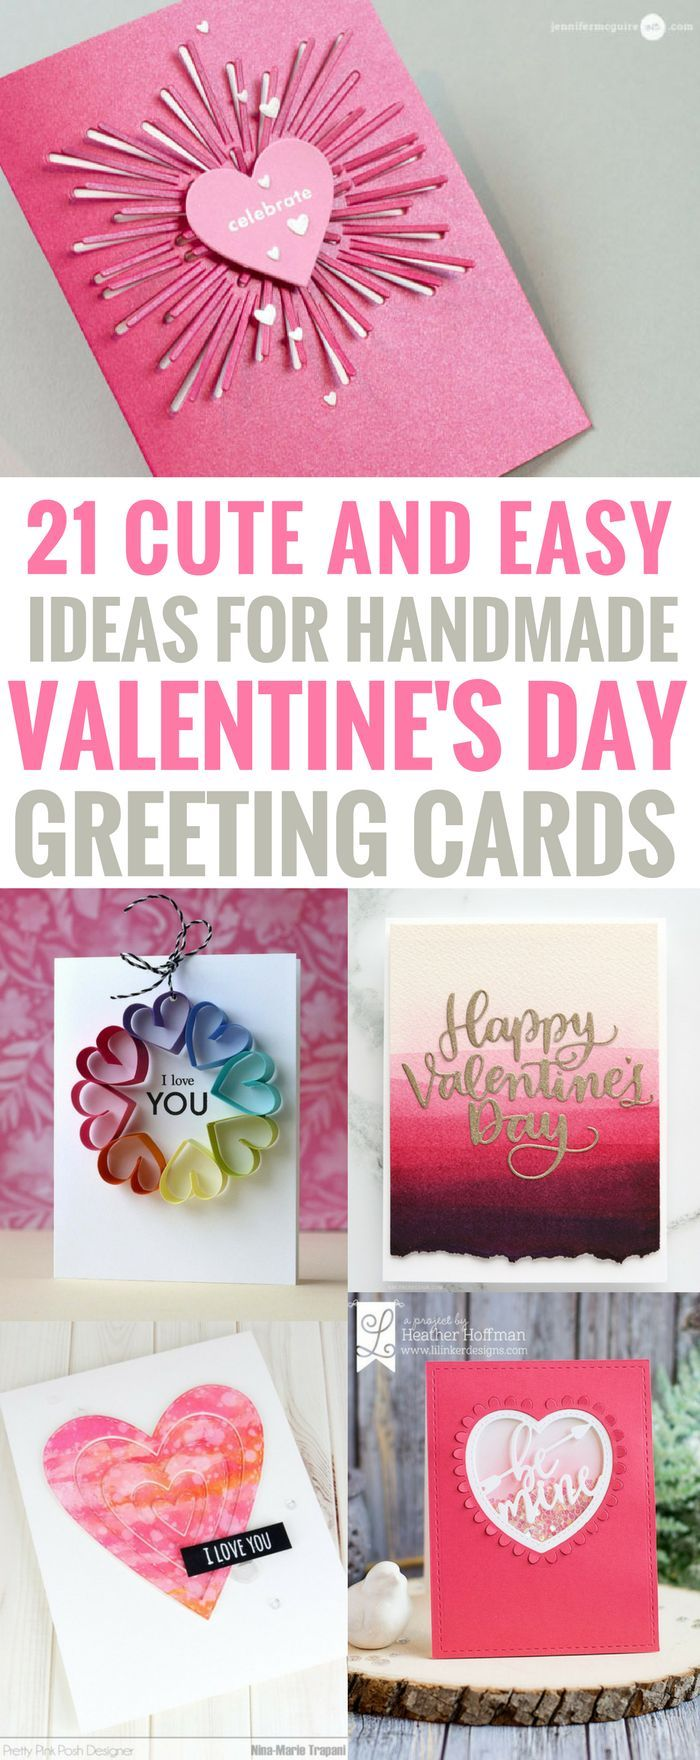 21 Amazingly Cute and Easy Ideas for Handmade Valentine's